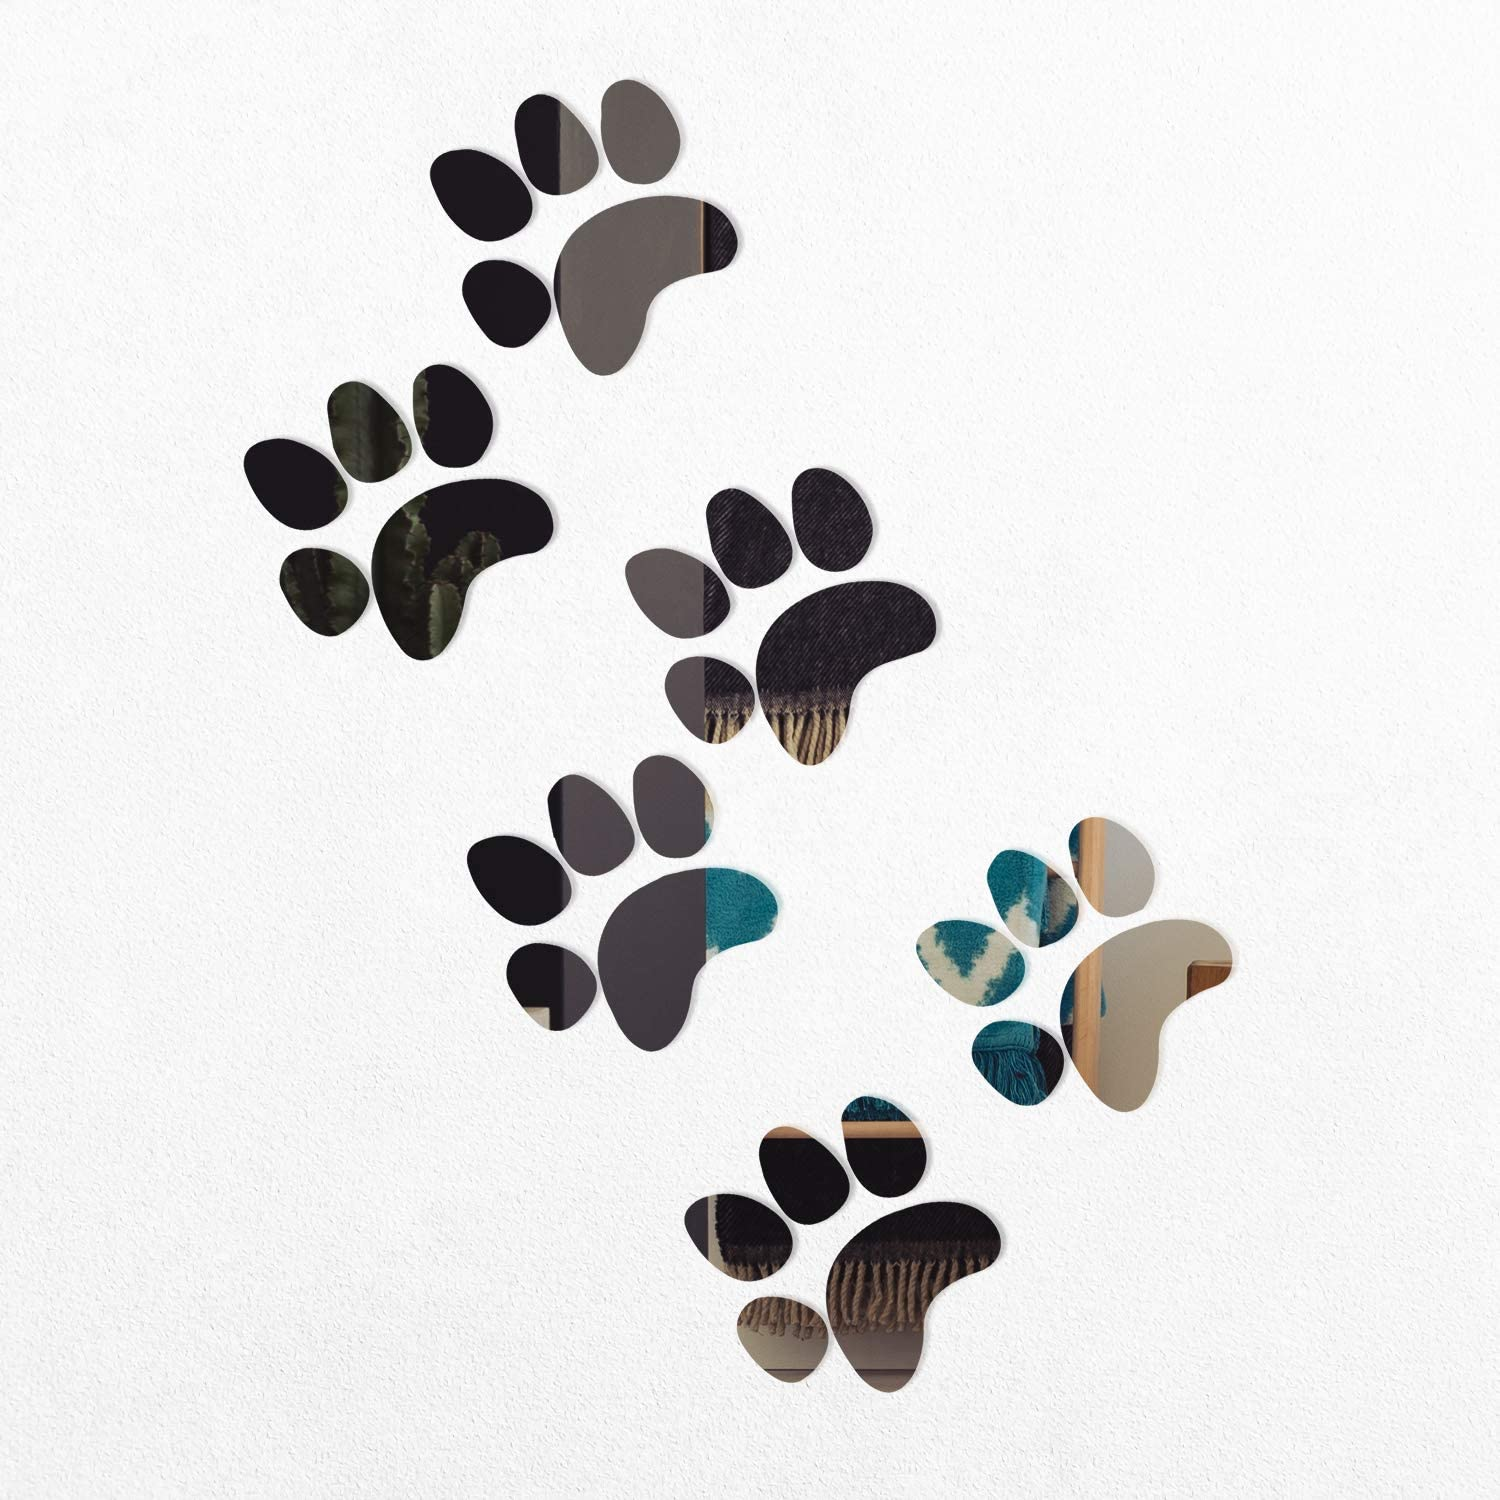 12 Cats Paws 8x8cm paws sticker Car Wall Decal